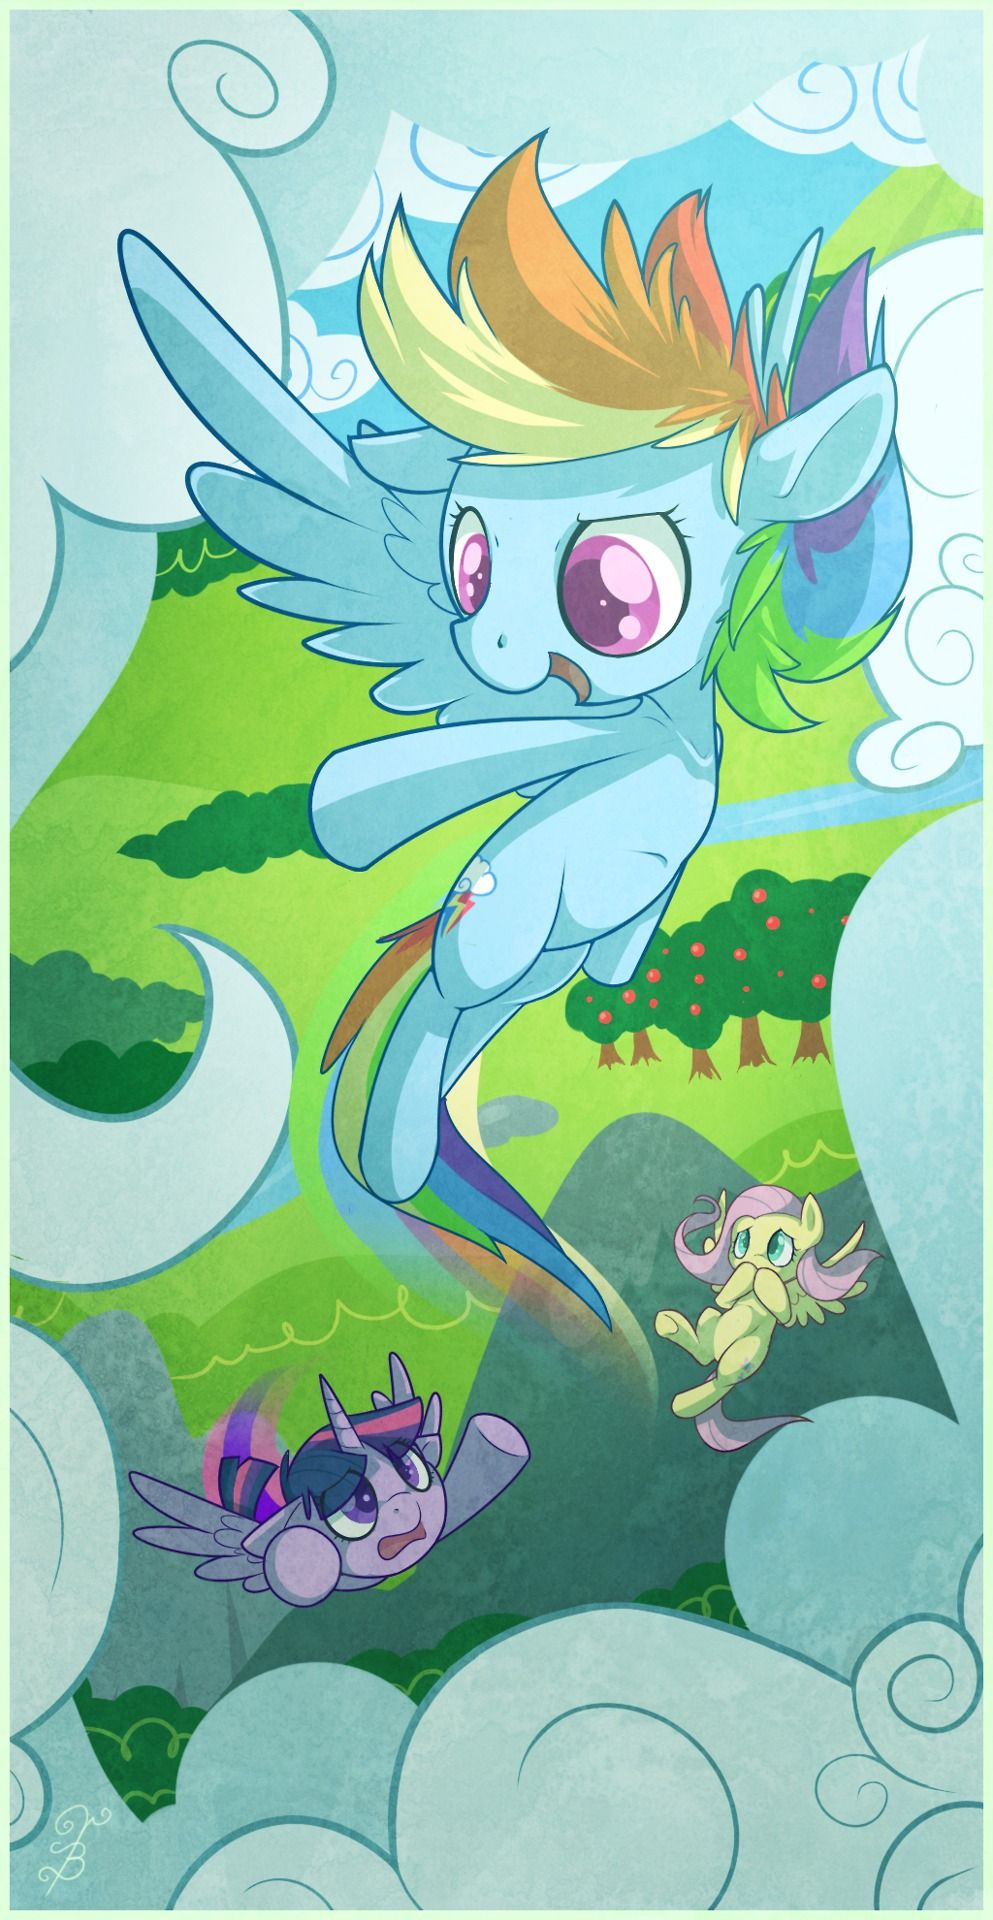 Dash, Twilight and Fluttershy